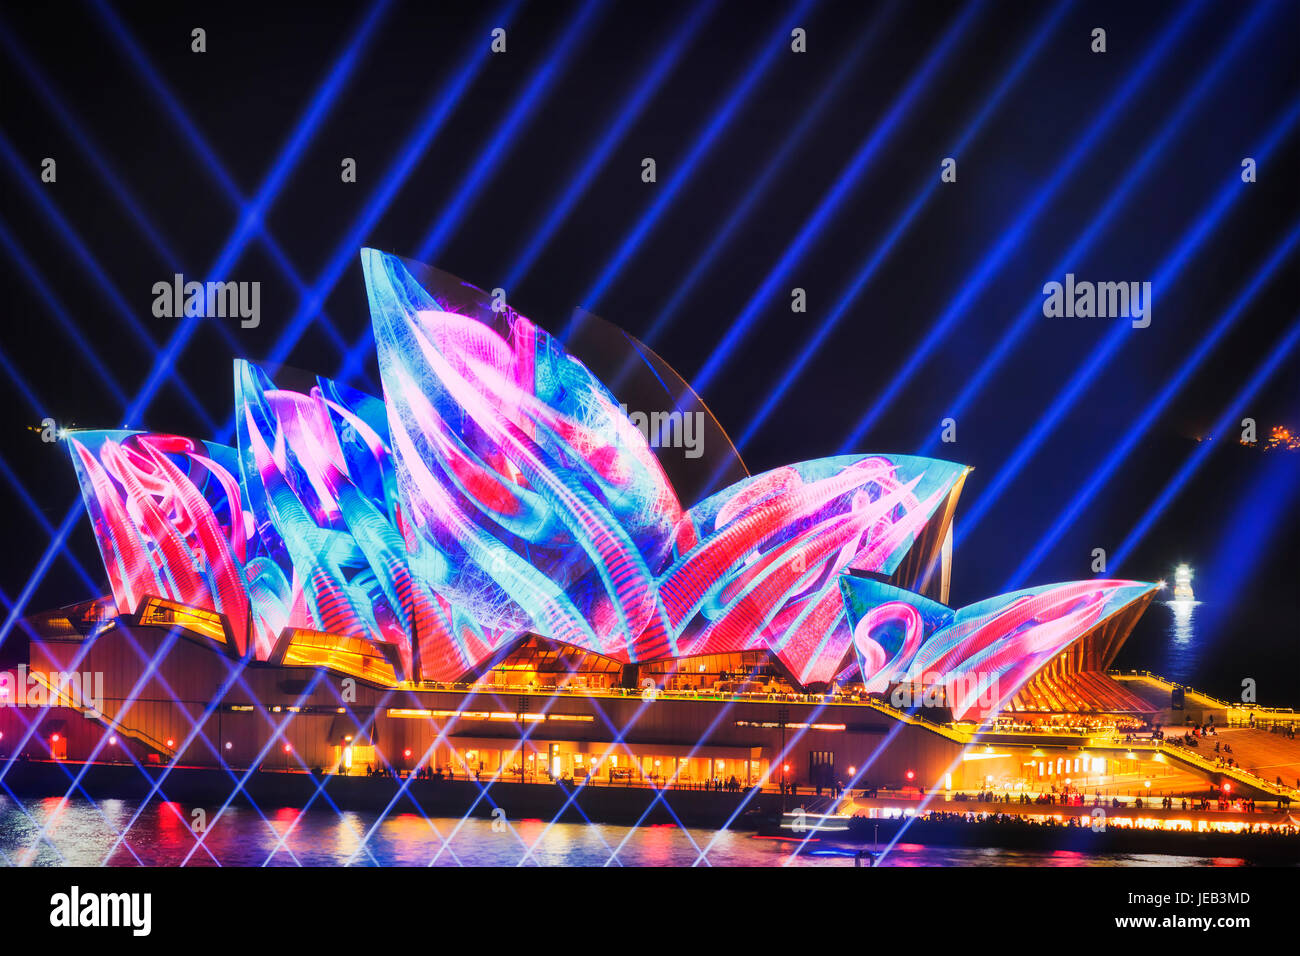 Sydney, Australia - 12 June 2017: Sydney Opera house behind crossing of blue light beams under colourful projection - Stock Image